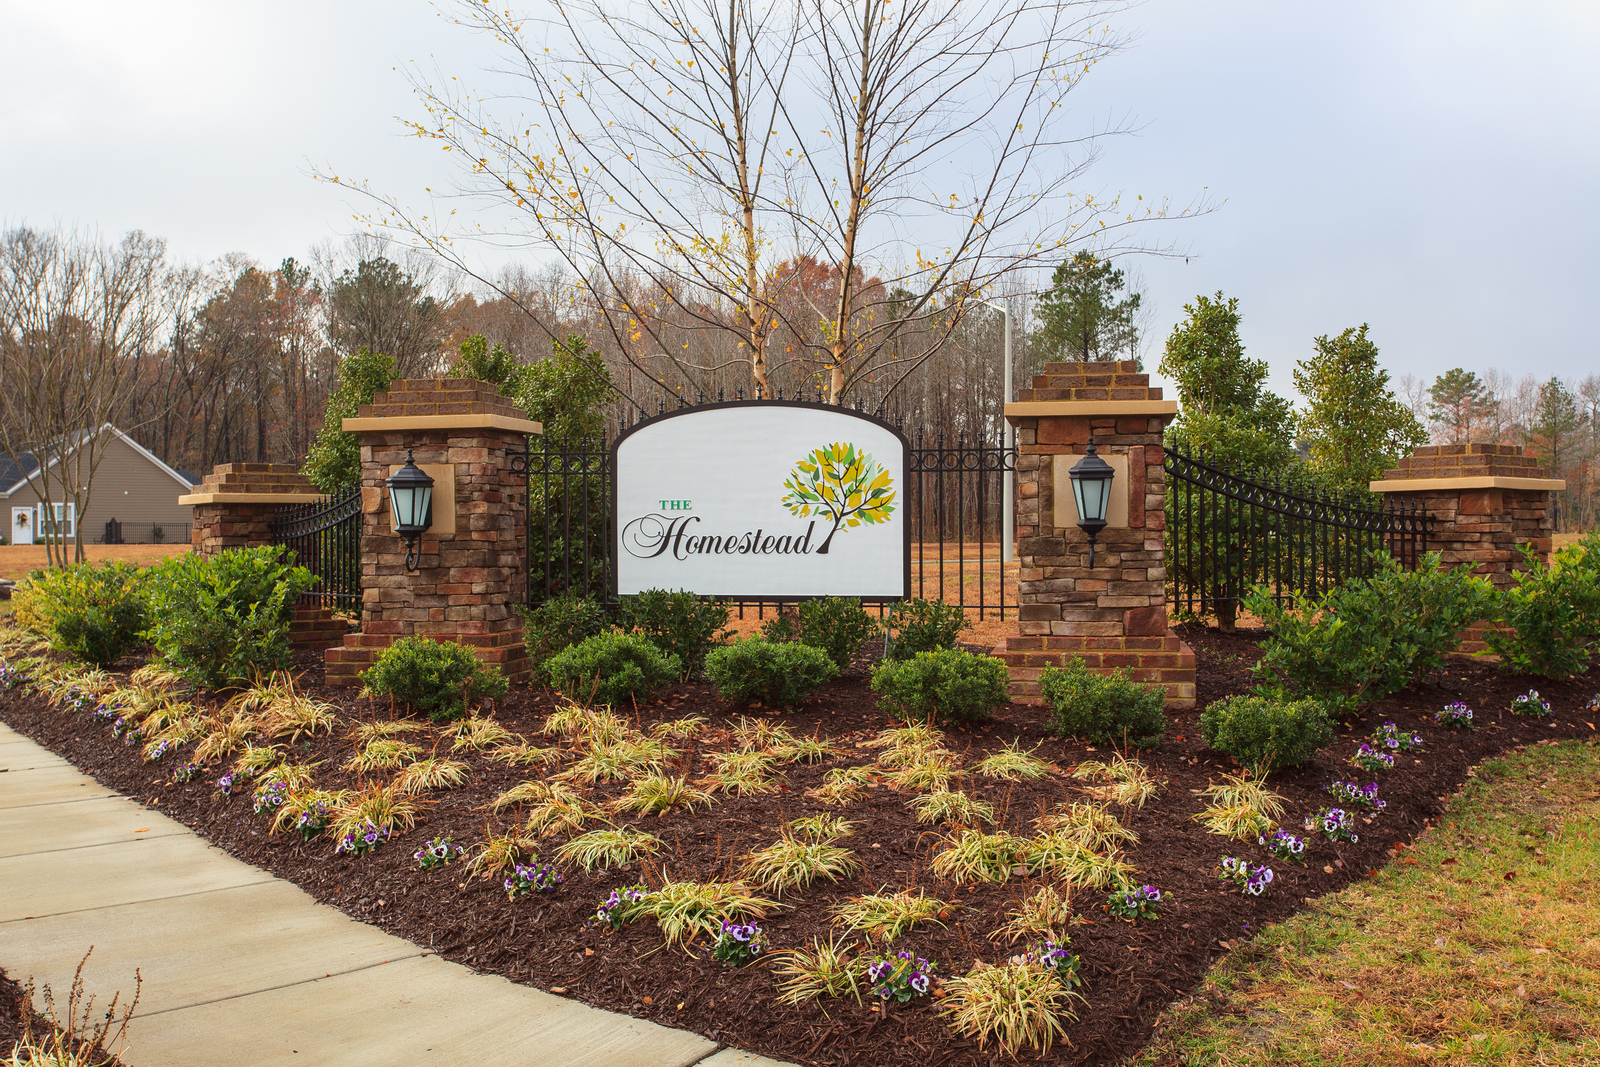 New Homes for sale at The Homestead in Chesapeake, VA within the ...